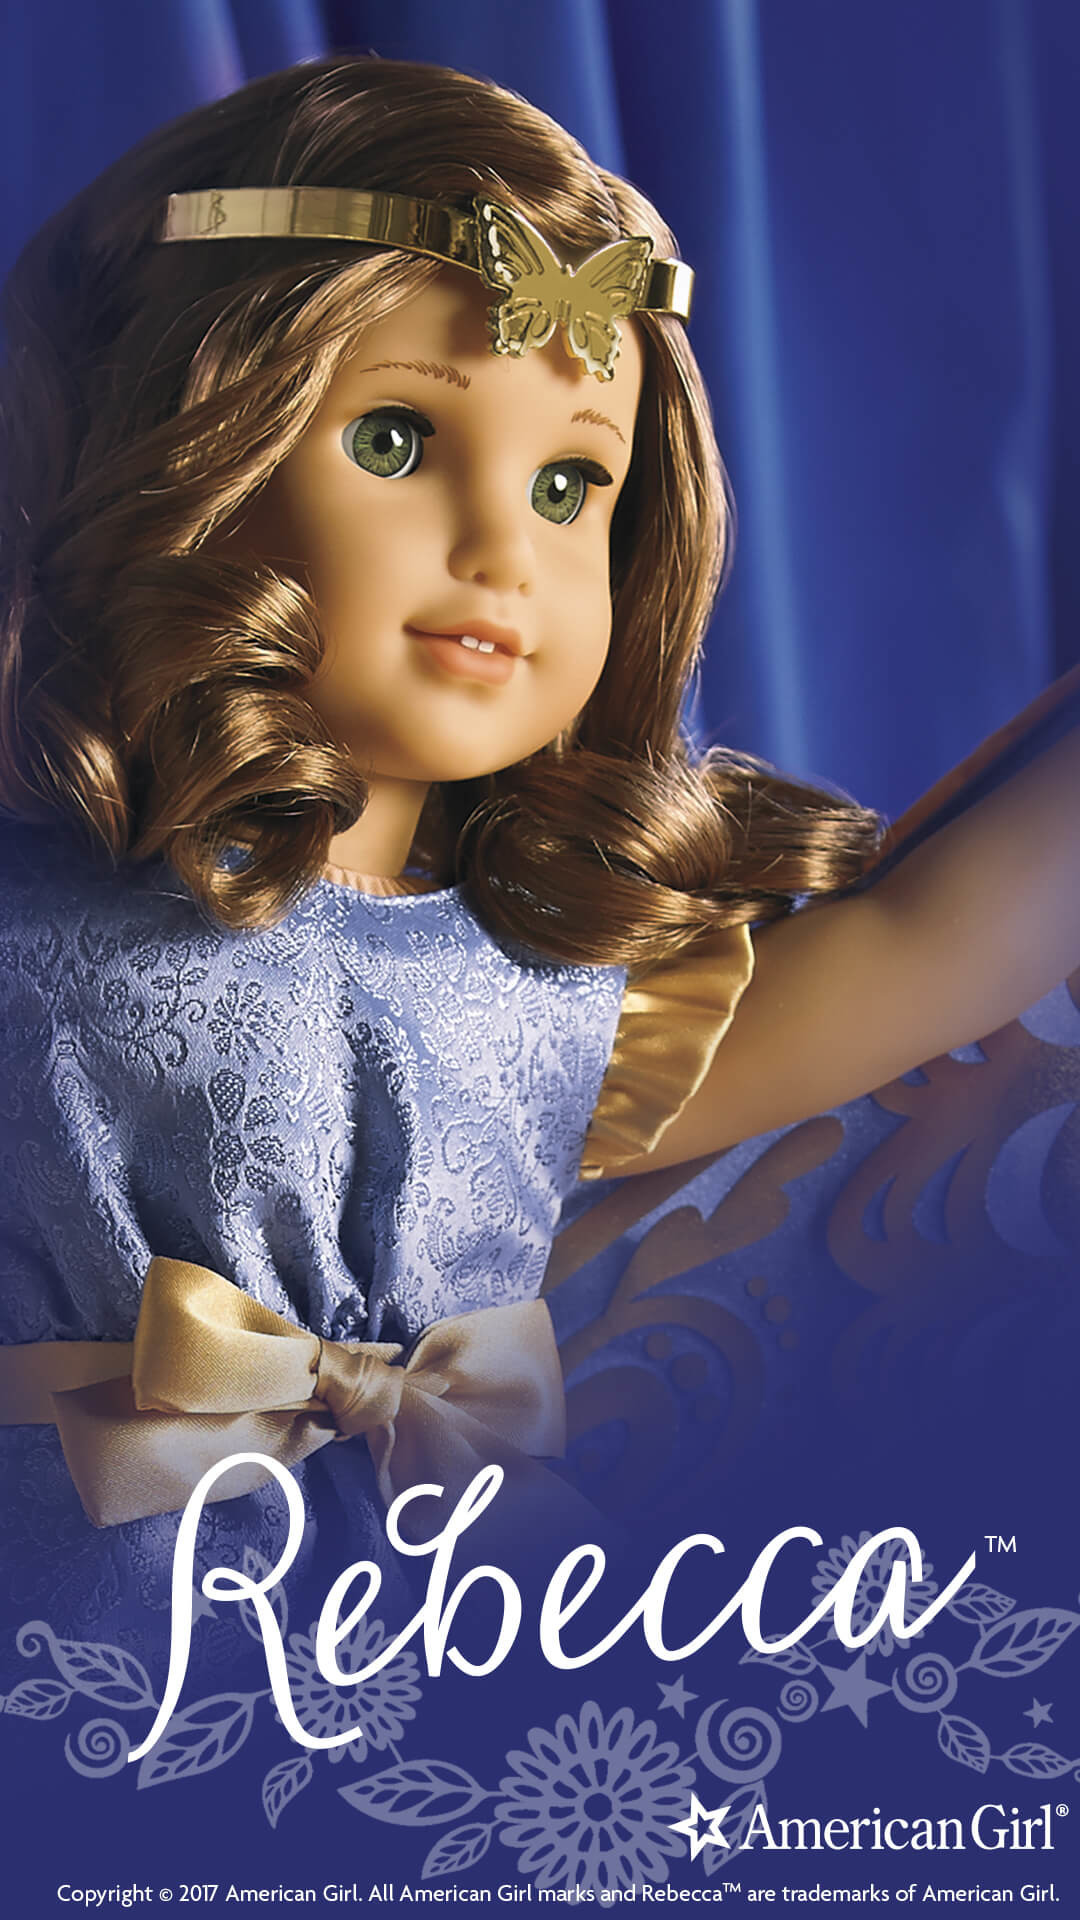 For Parents & Teachers · About American Girl